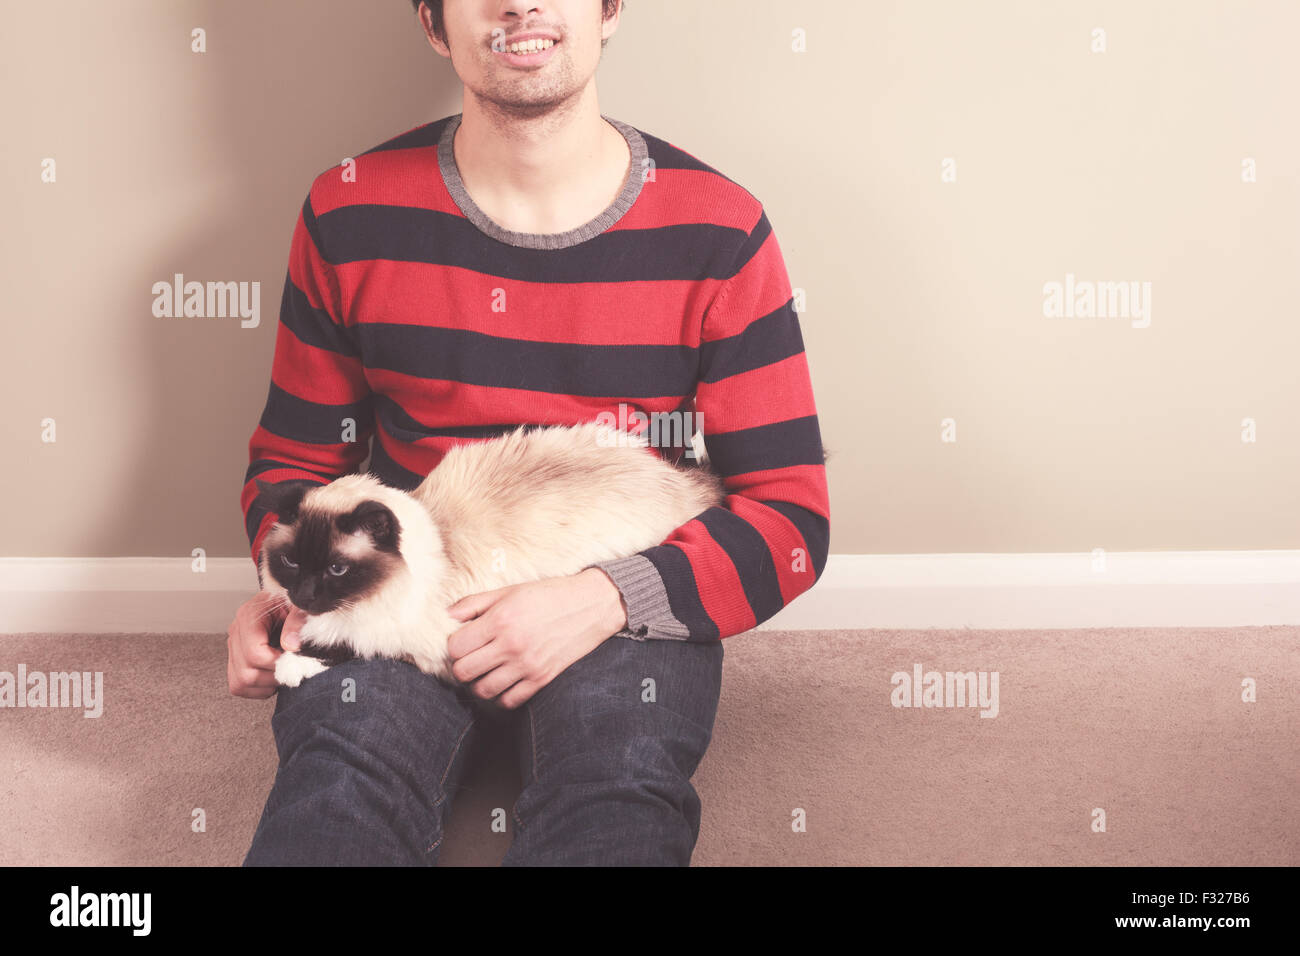 A young man is sitting on the floor and petting his cat - Stock Image